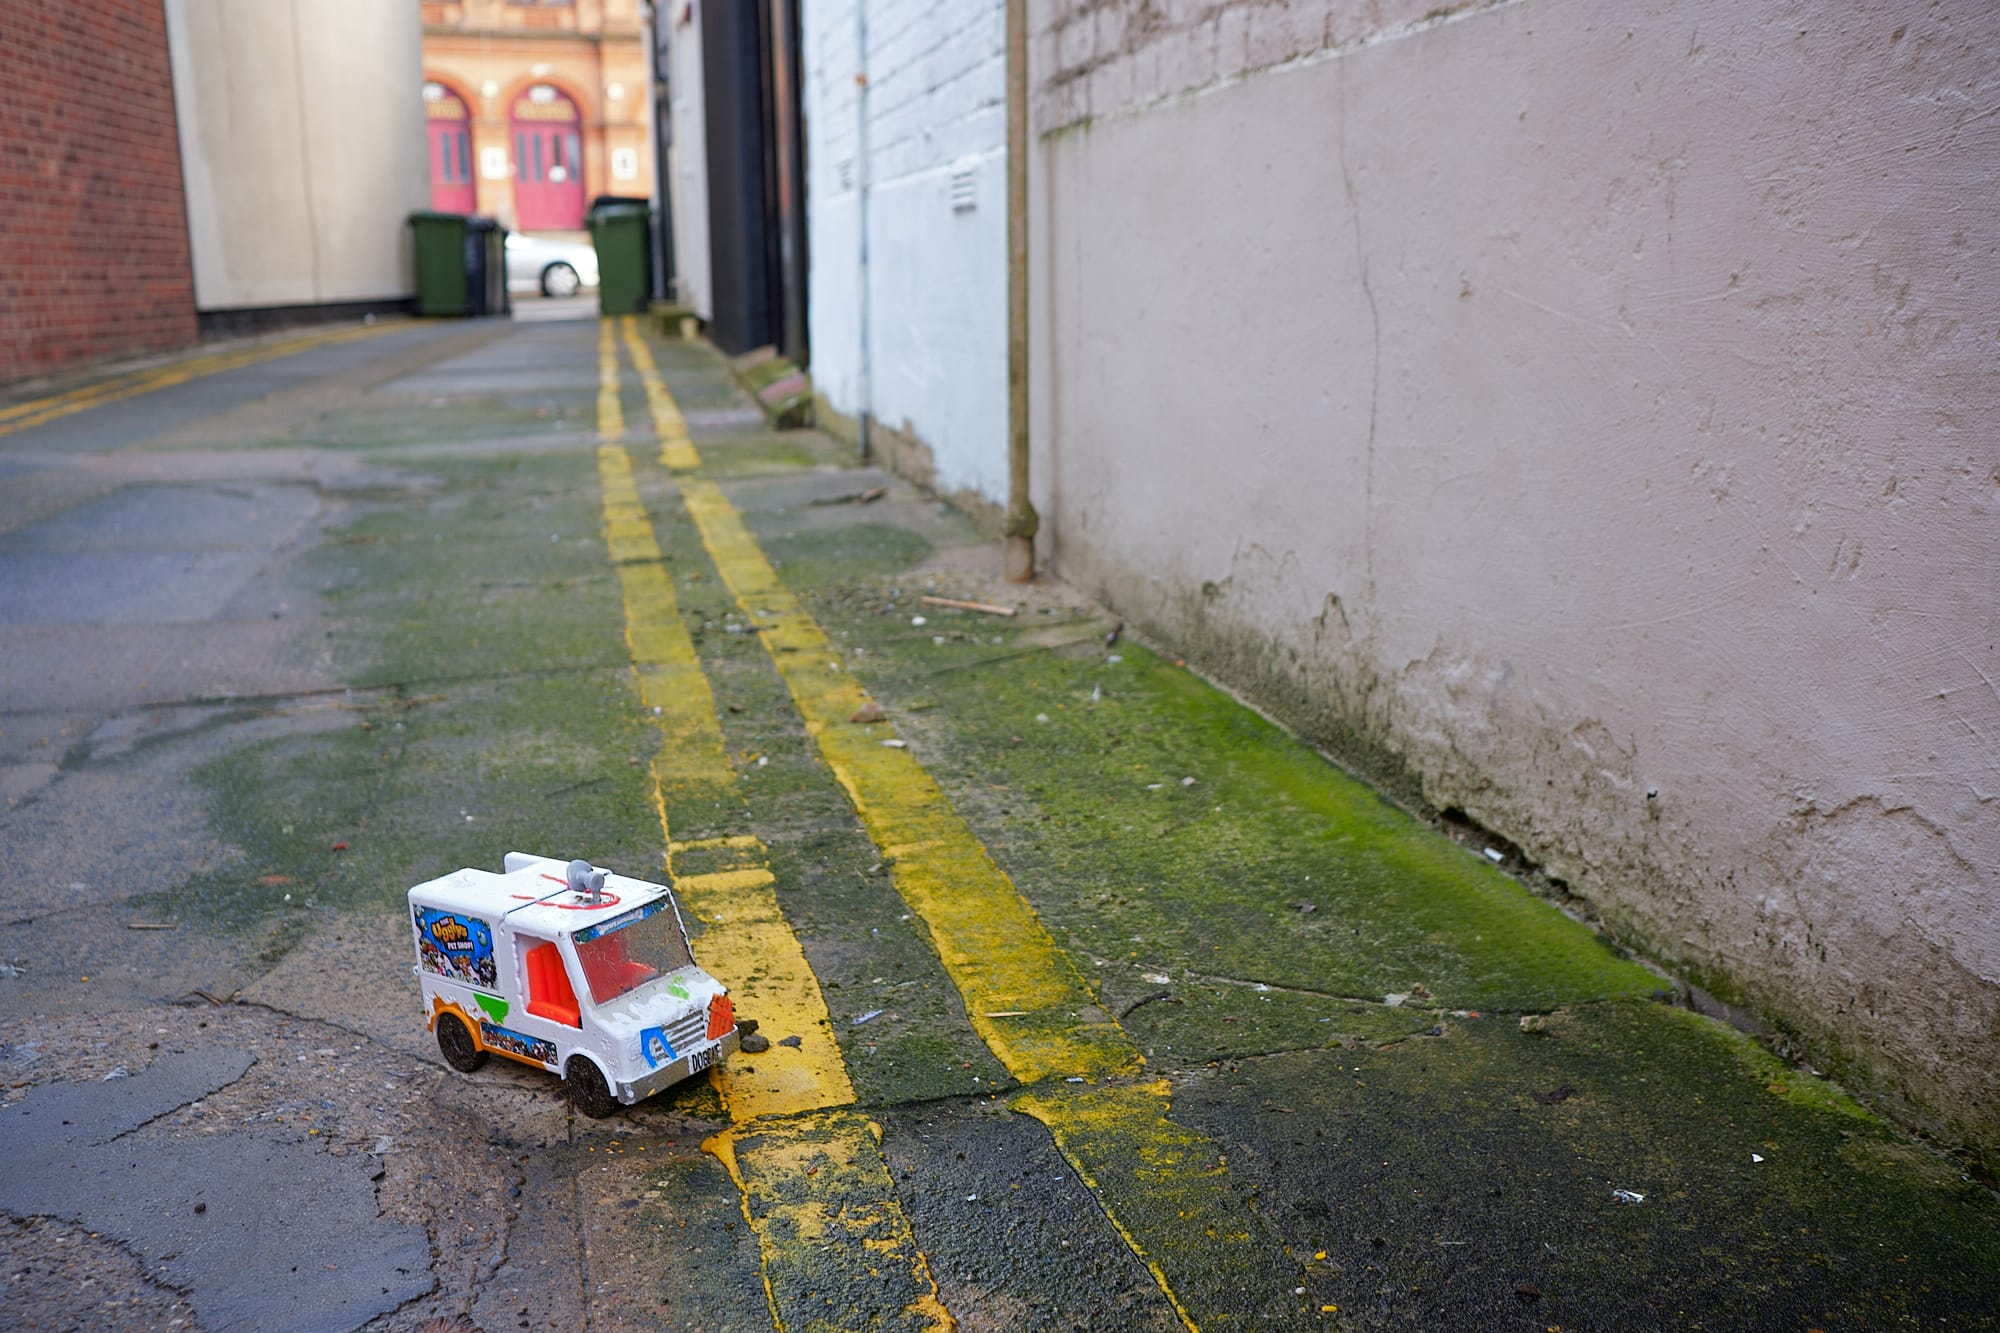 lonely toy van